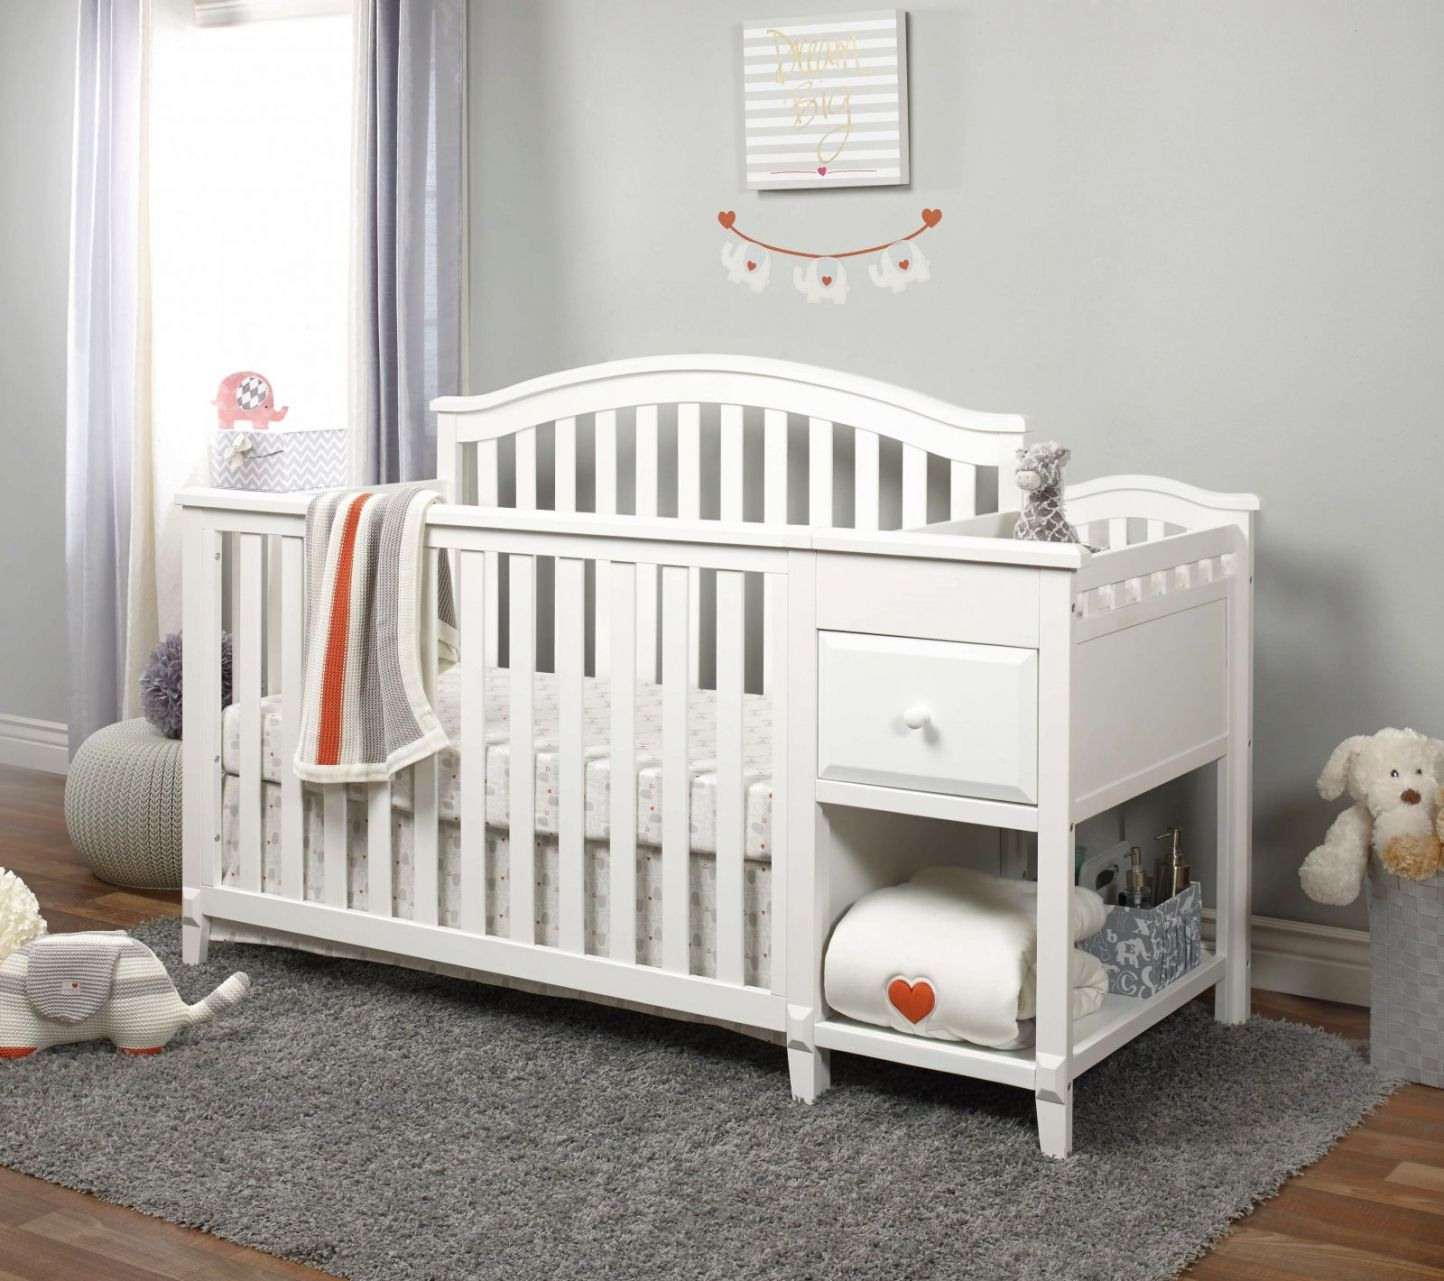 Baby Furniture Stores In Ct   Best Paint For Interior Walls Check More At  Http: